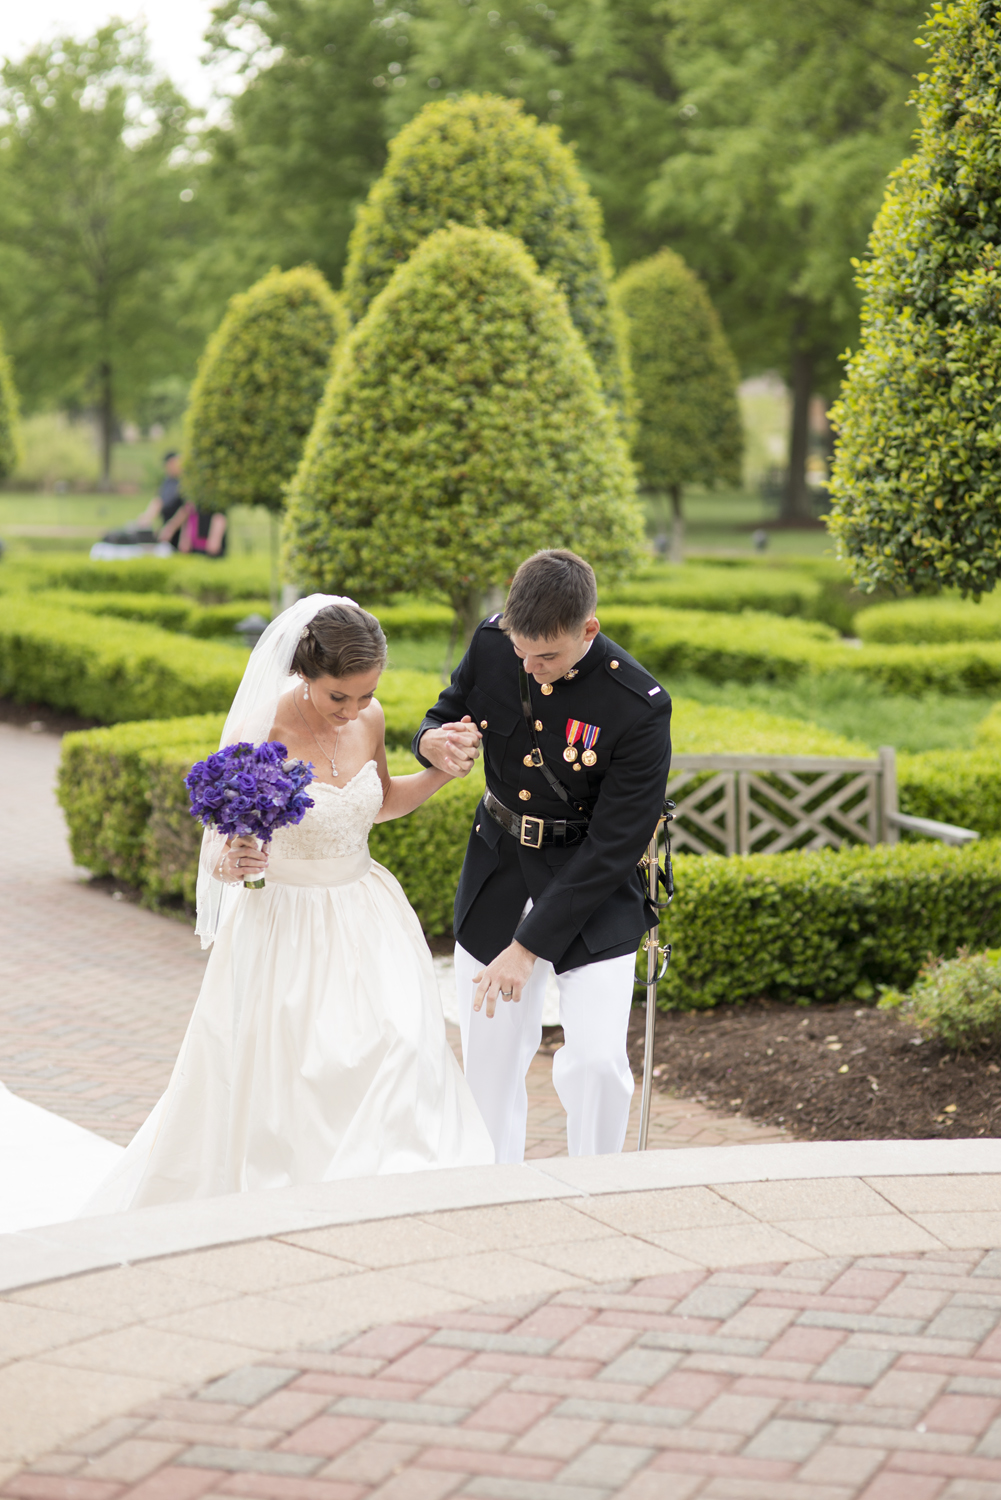 Groom helping his bride down the aisle | Maria Grace Photography